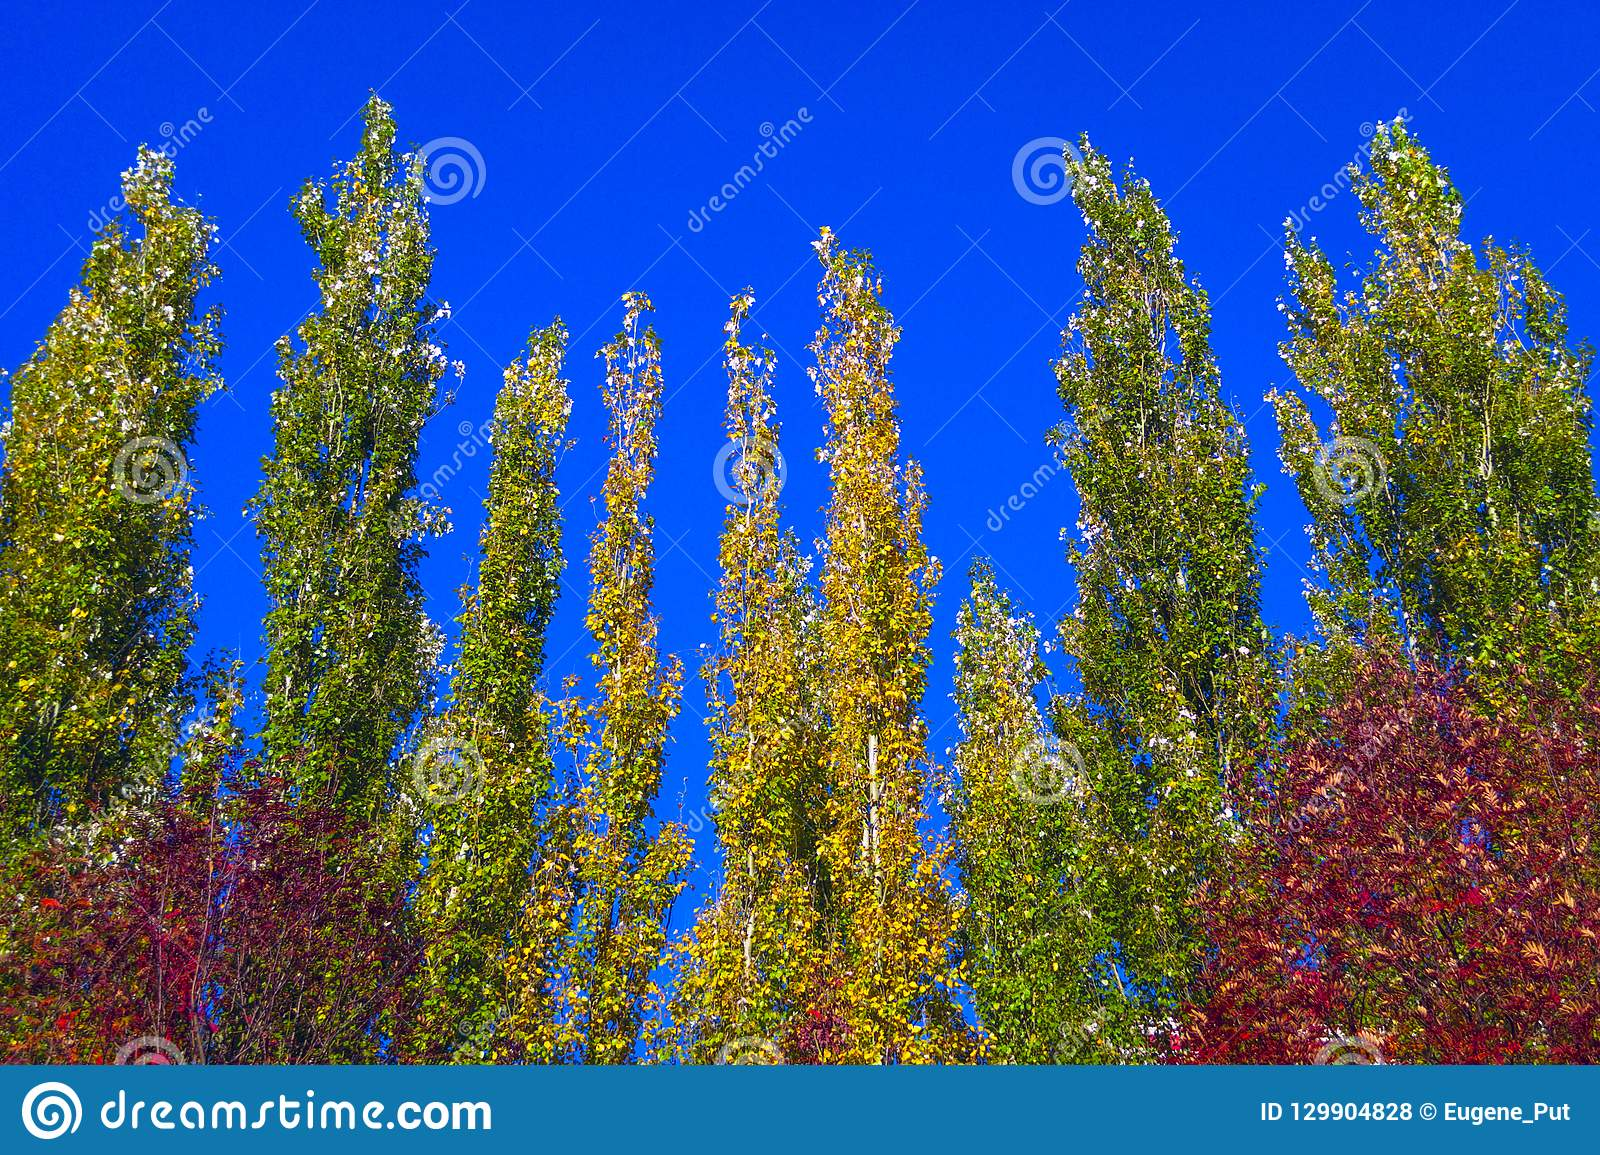 Lombardy Poplar Tree Tops Against Blue Sky On A Windy Day. Abstract Natural Background. Autumn Trees, Colorful Fall Foliage.